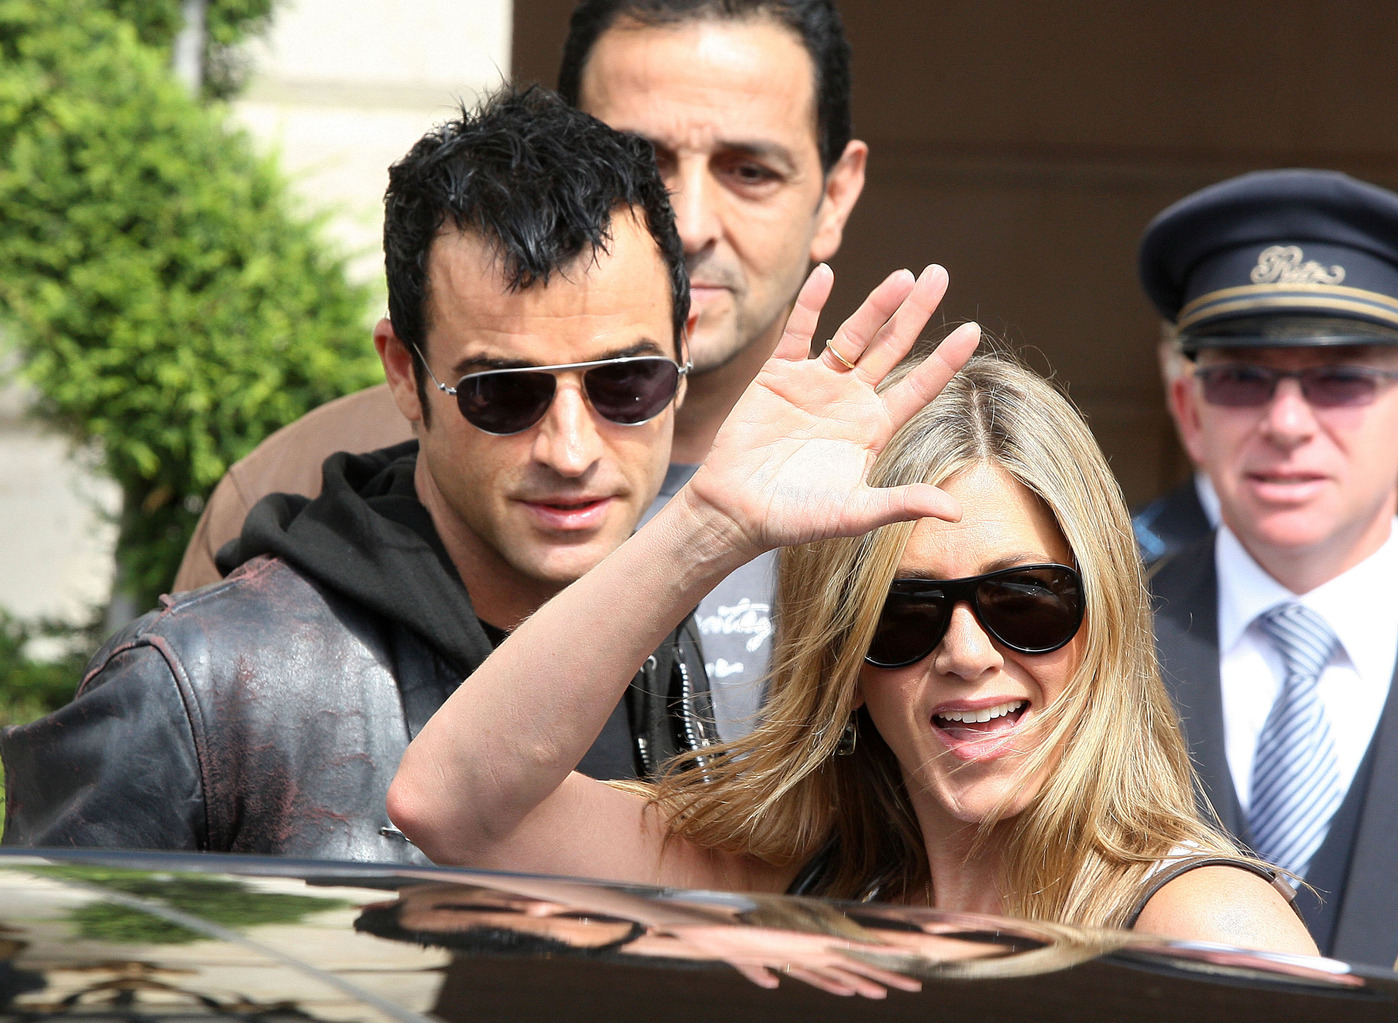 Hot couple Jennifer Aniston and Justin Theroux seen leaving together from the Ritz Hotel in Paris